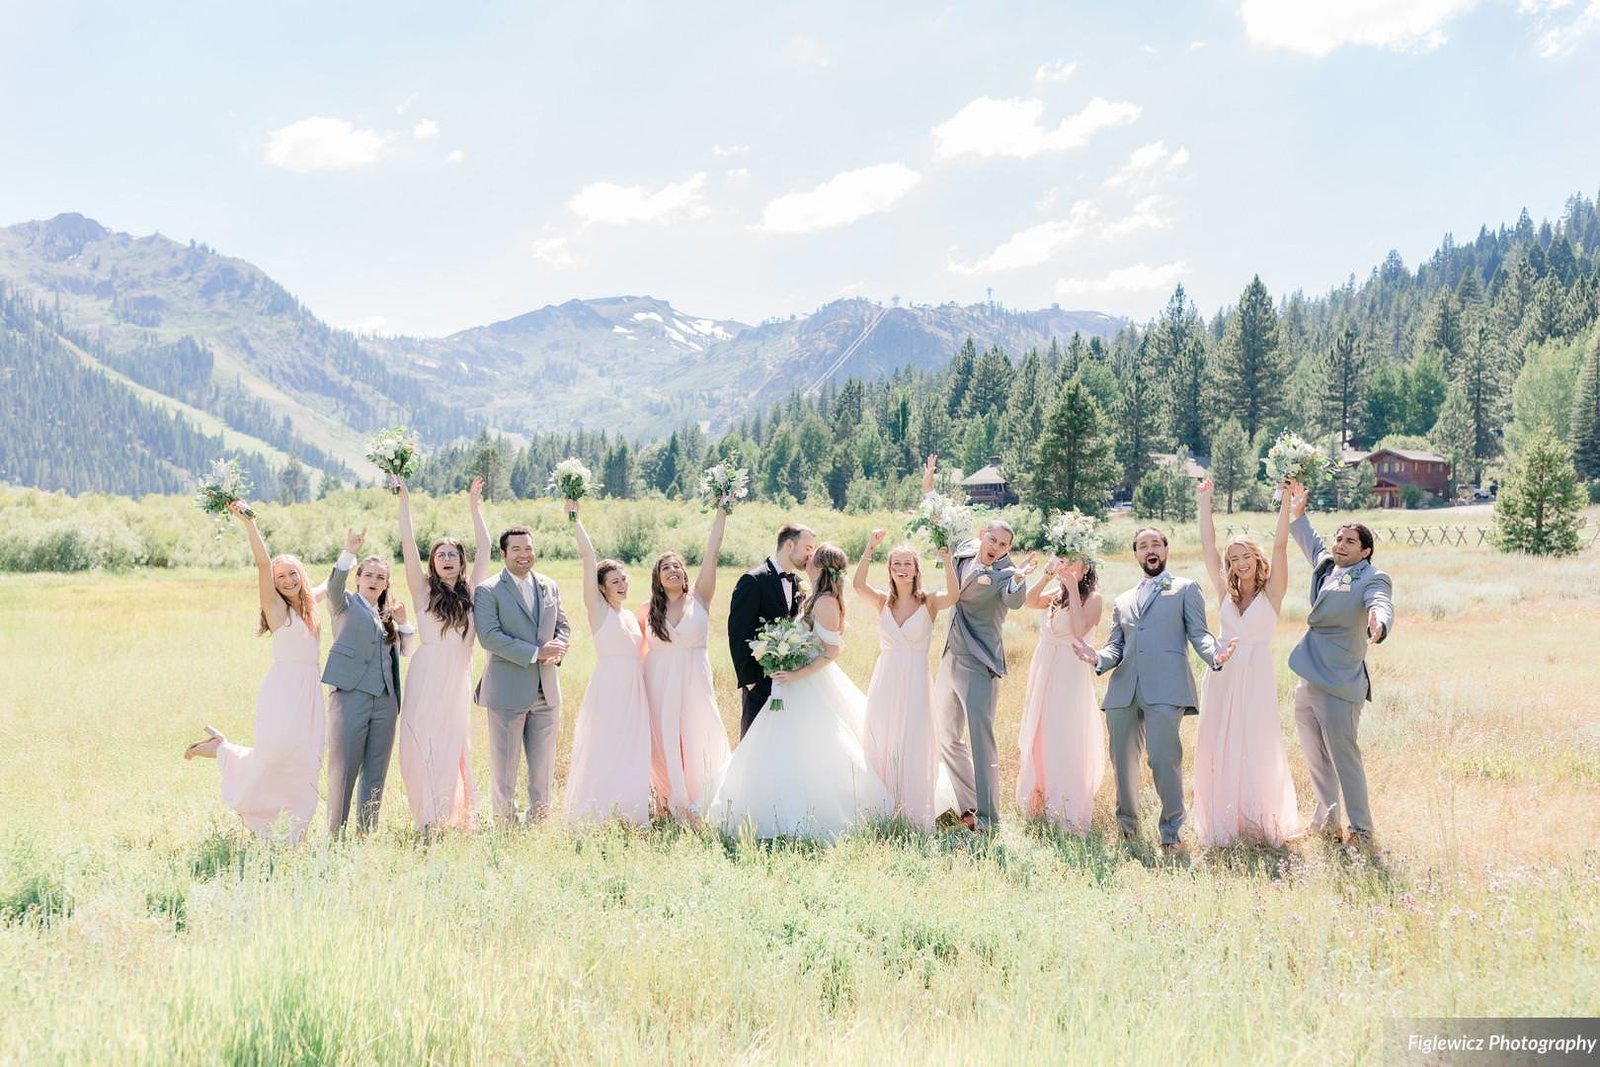 Garden_Tinsley_FiglewiczPhotography_LakeTahoeWeddingSquawValleyCreekTaylorBrendan00040_big